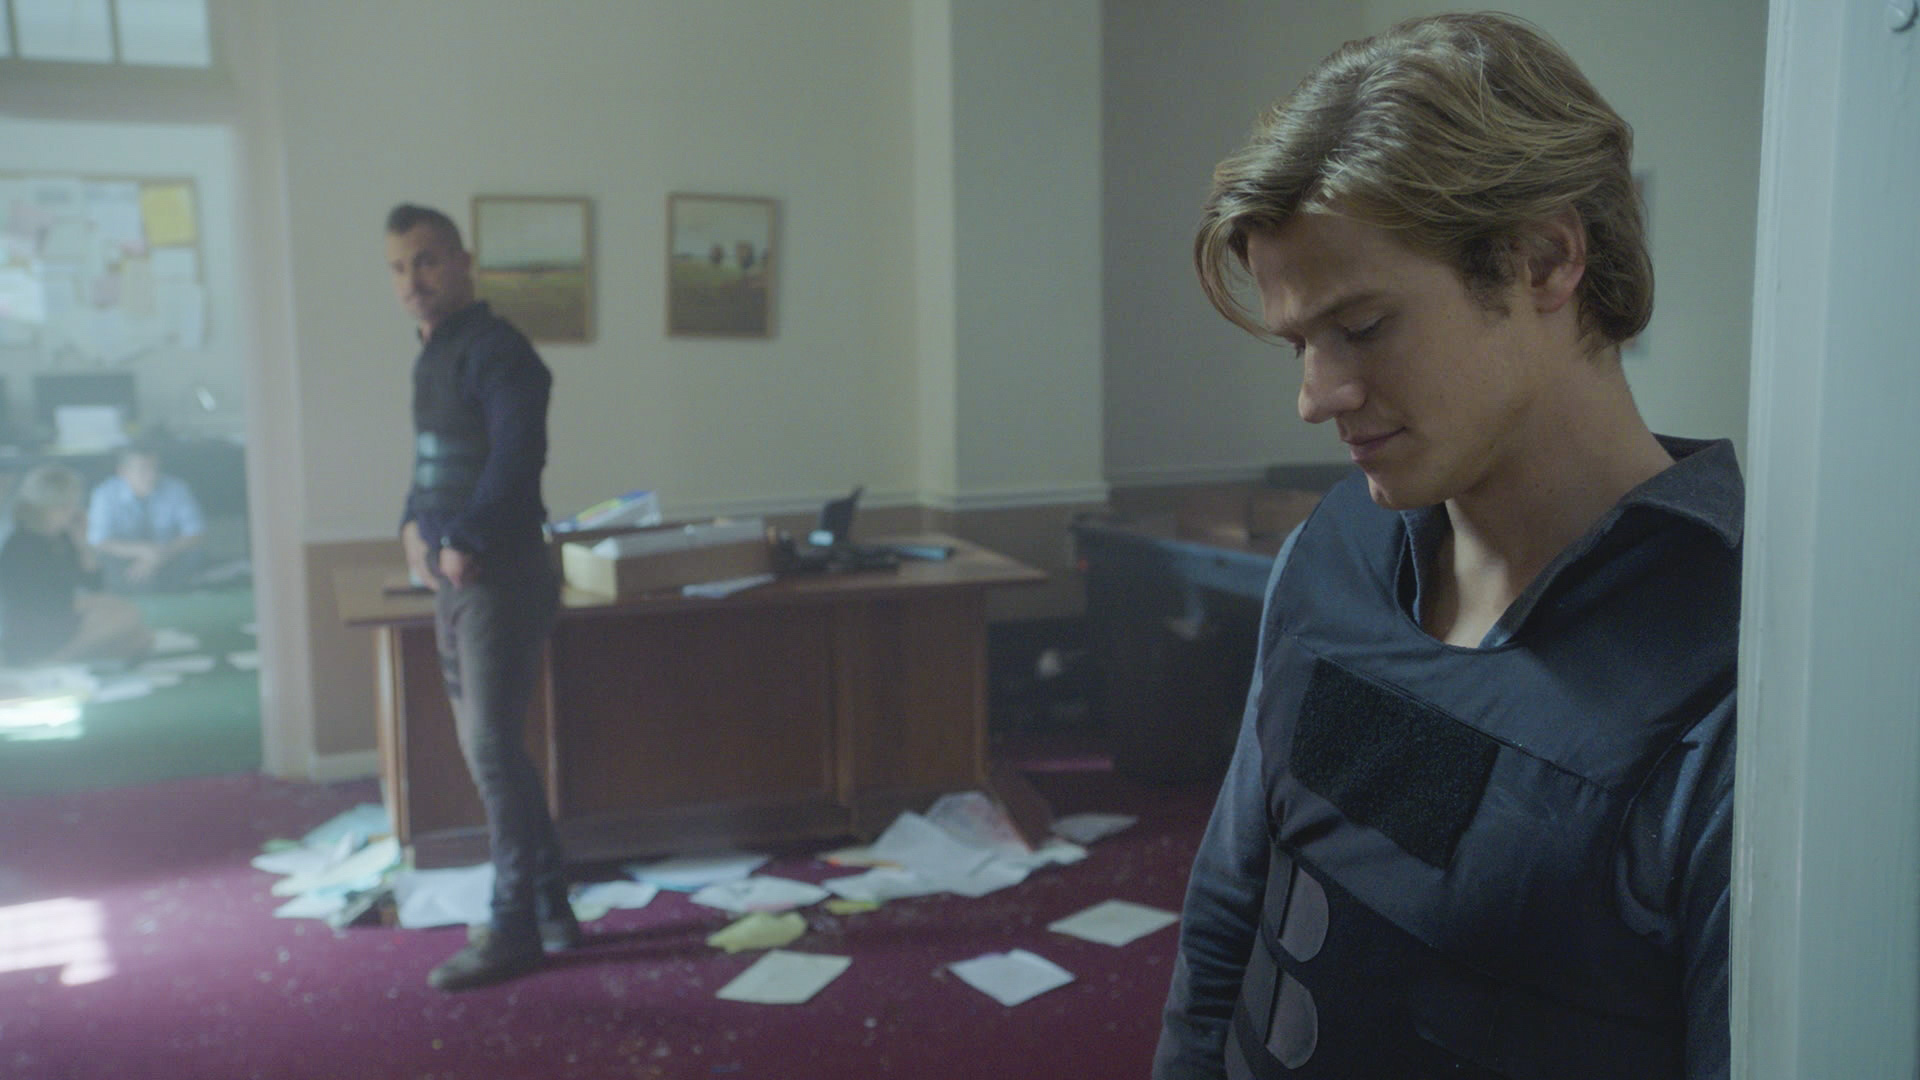 MacGyver and Jack turn the offices upside down.